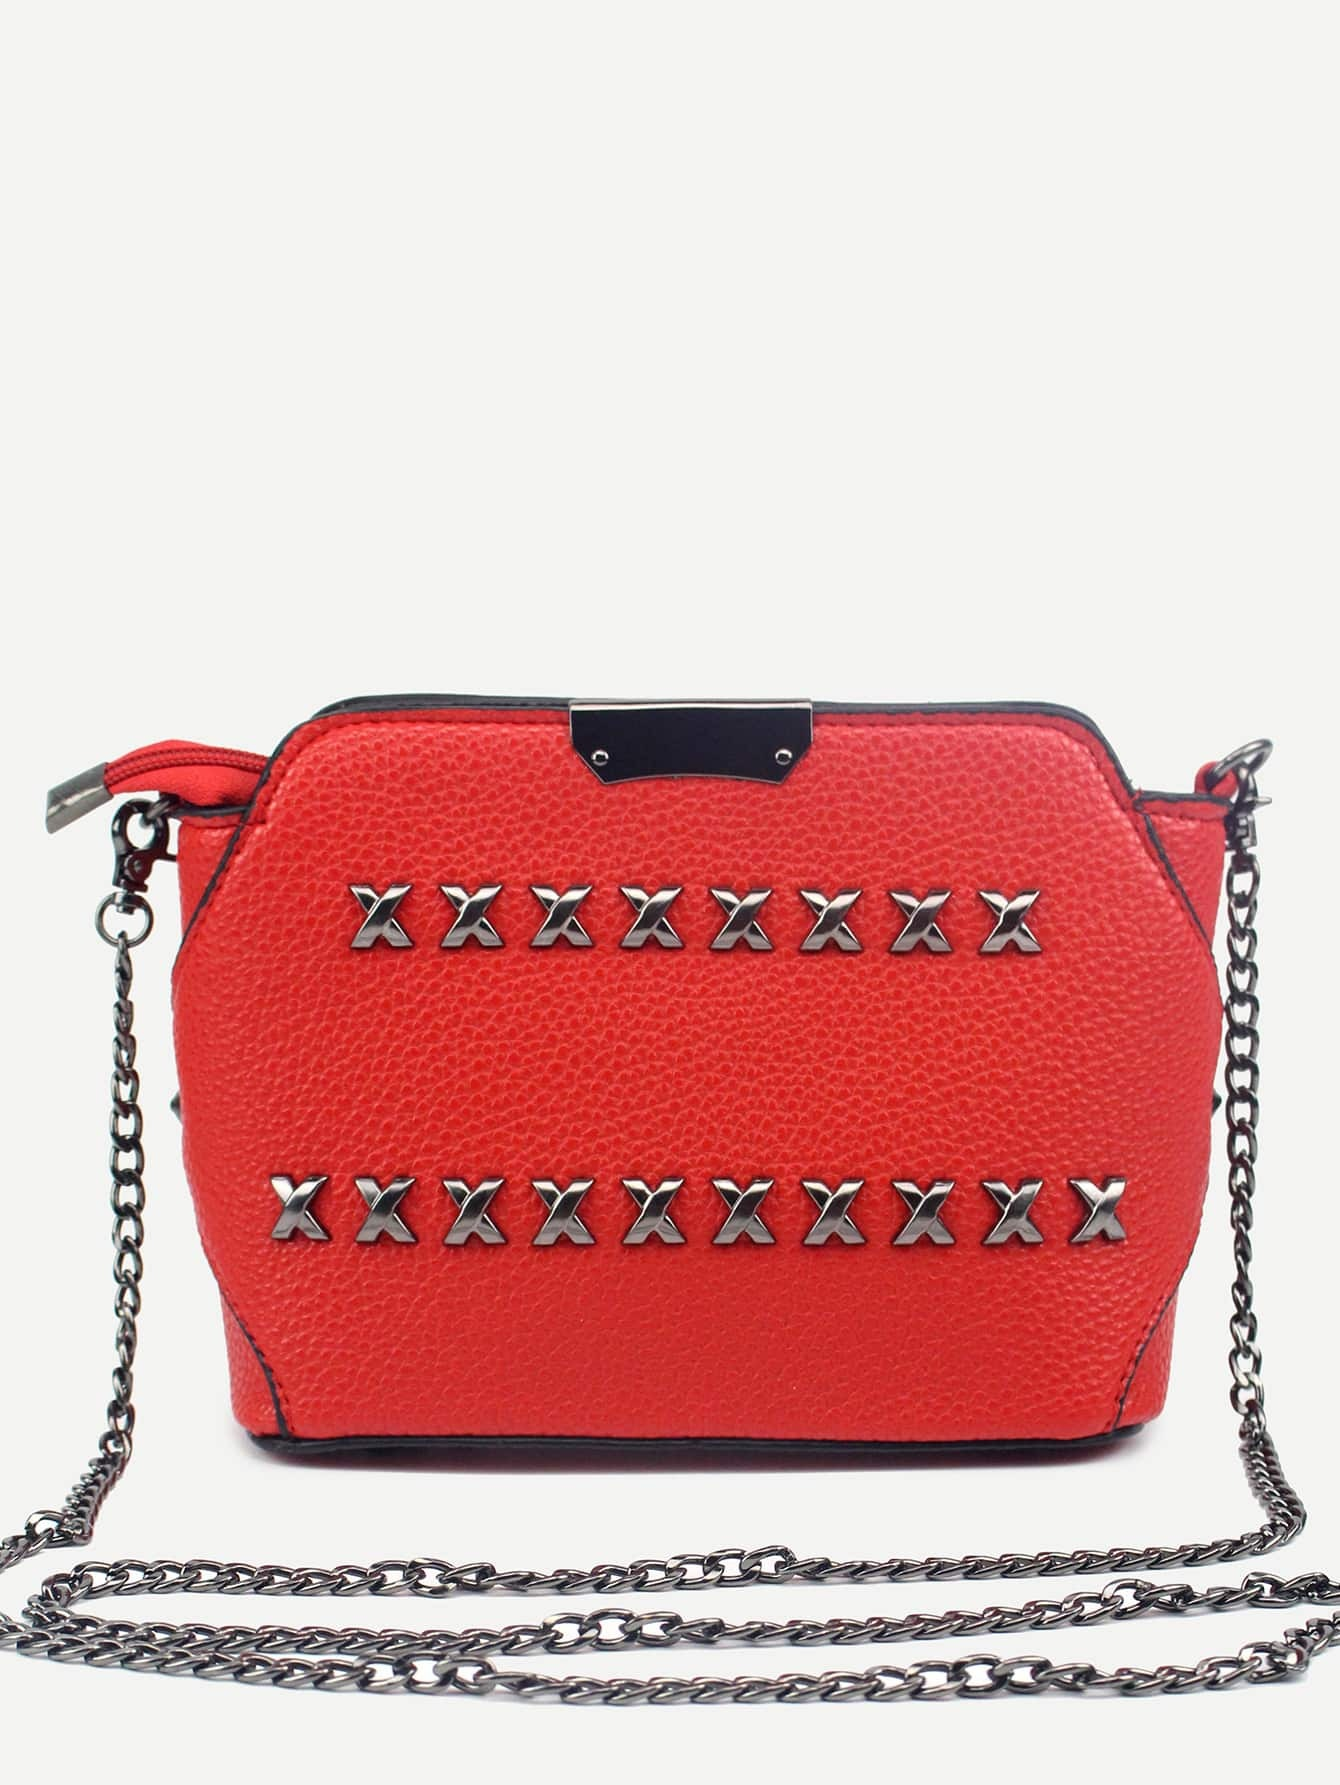 Sac cha ne en similicuir avec rivets rouge french romwe for Interieur paupiere inferieure rouge